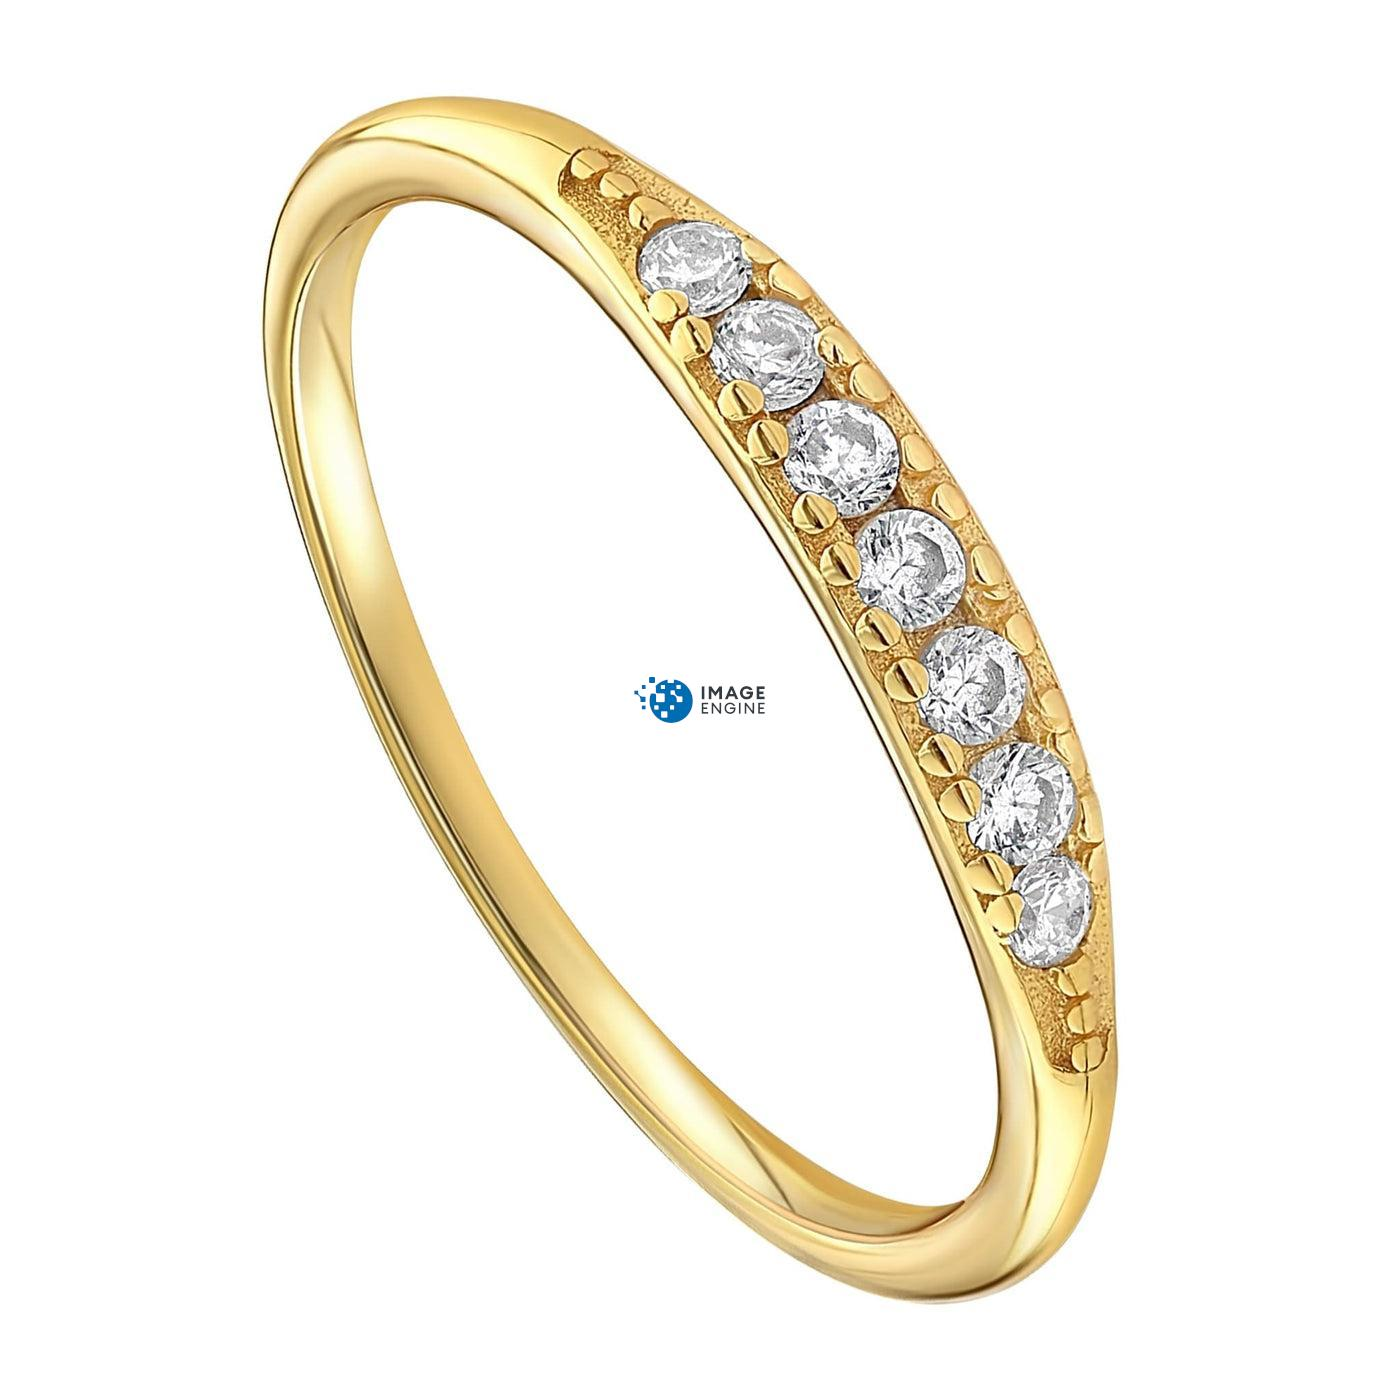 Kathleen Stack Ring - Three Quarter View - 18K Yellow Gold Vermeil